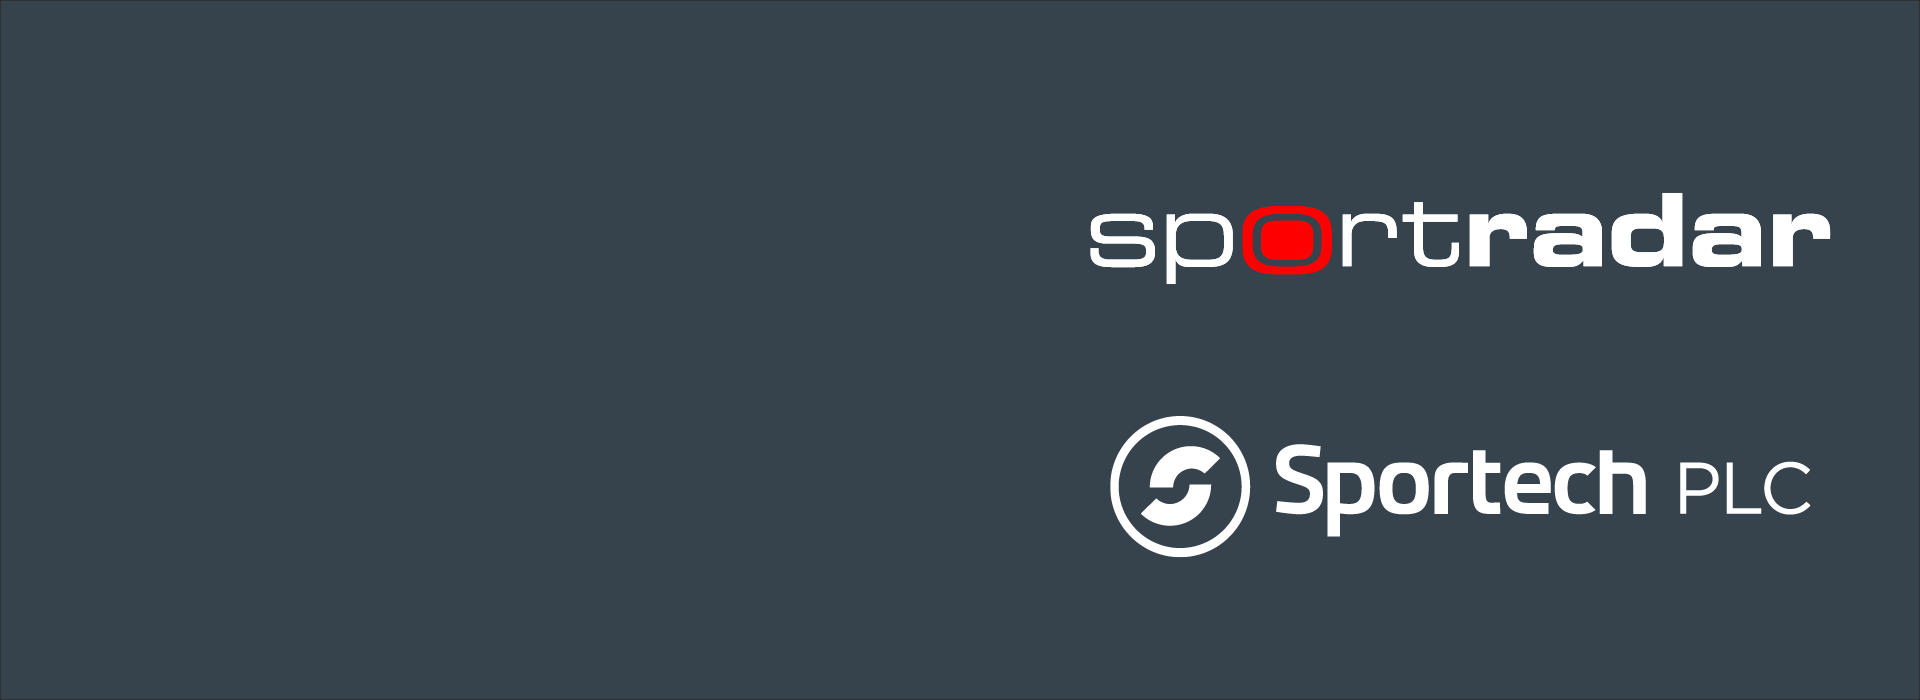 Sportech betting odds crypto currency trading platforms